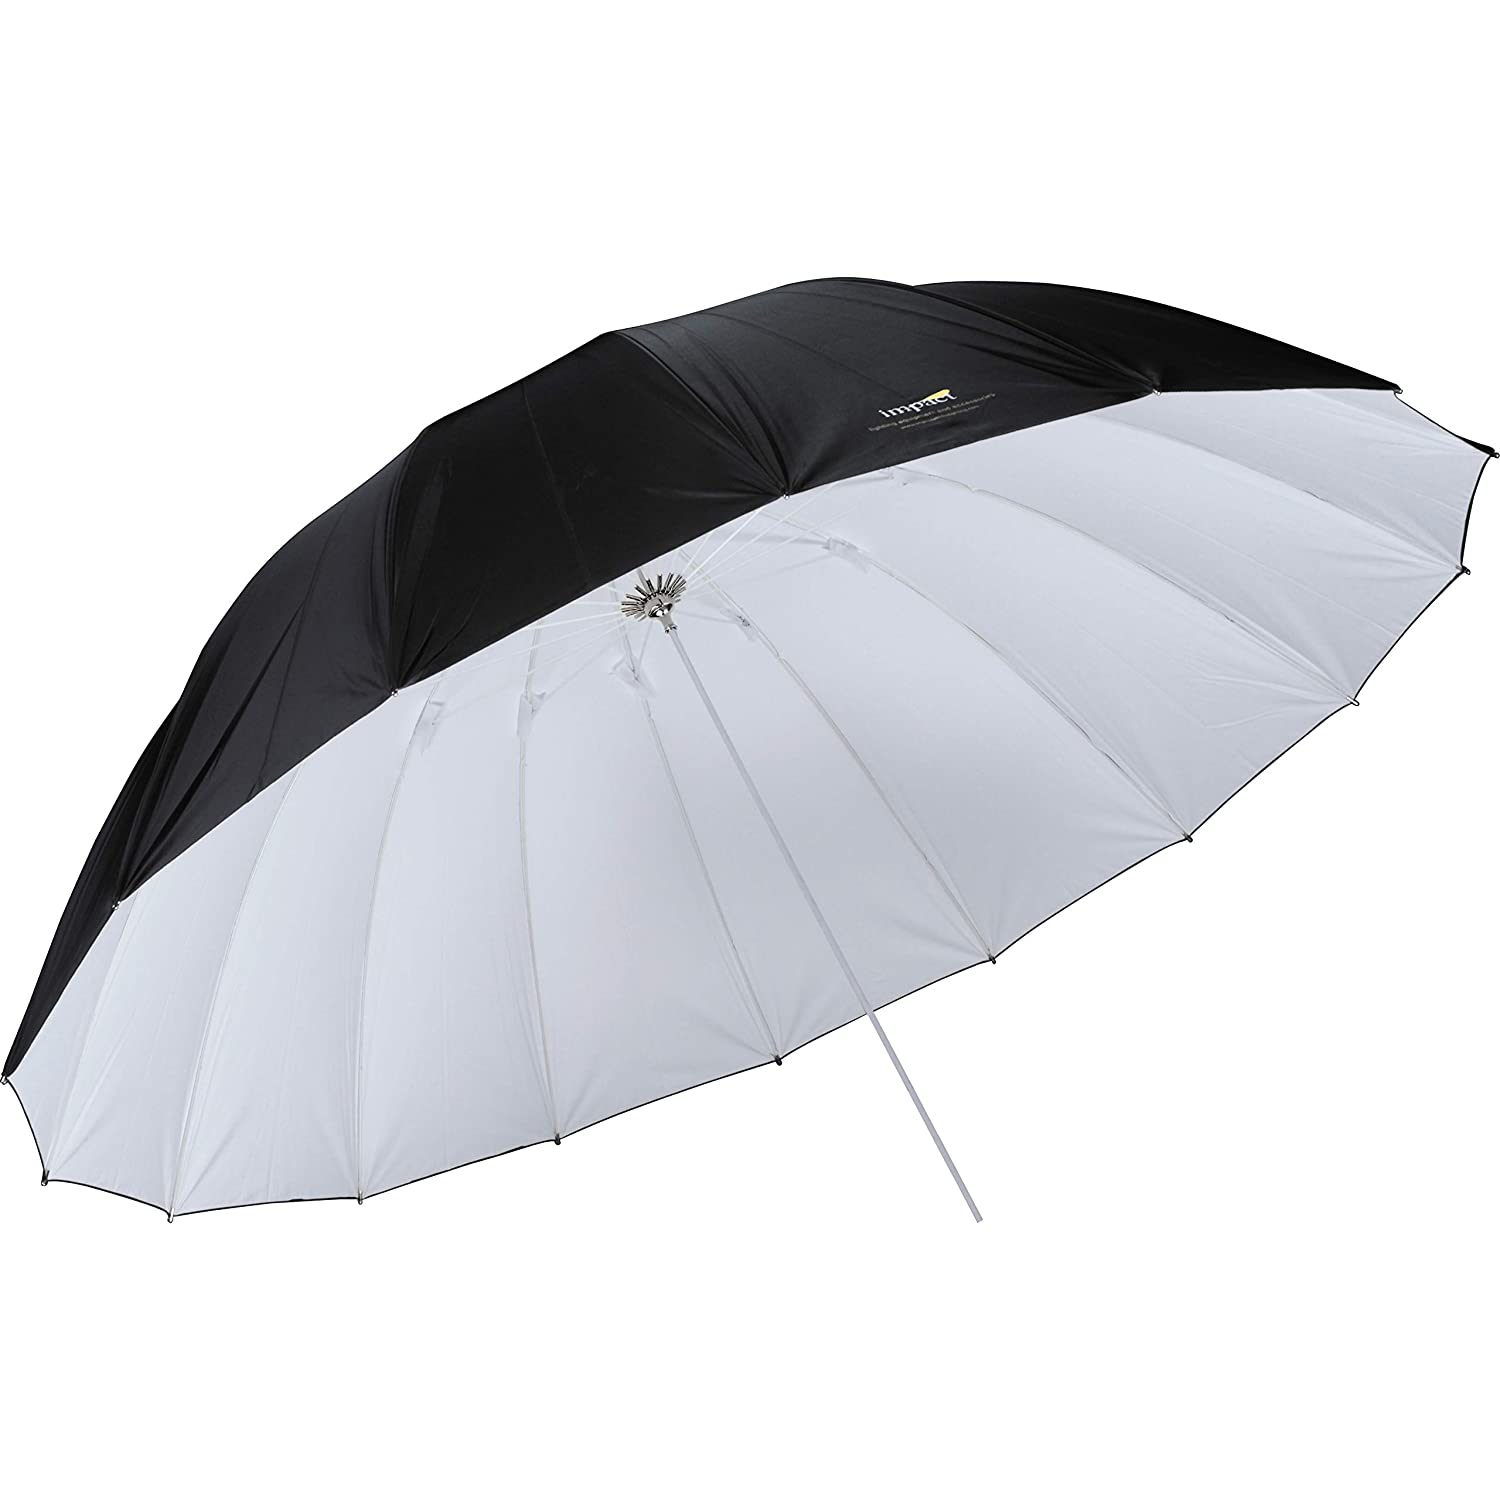 Impact 7 Improved Parabolic Umbrella (white/black)